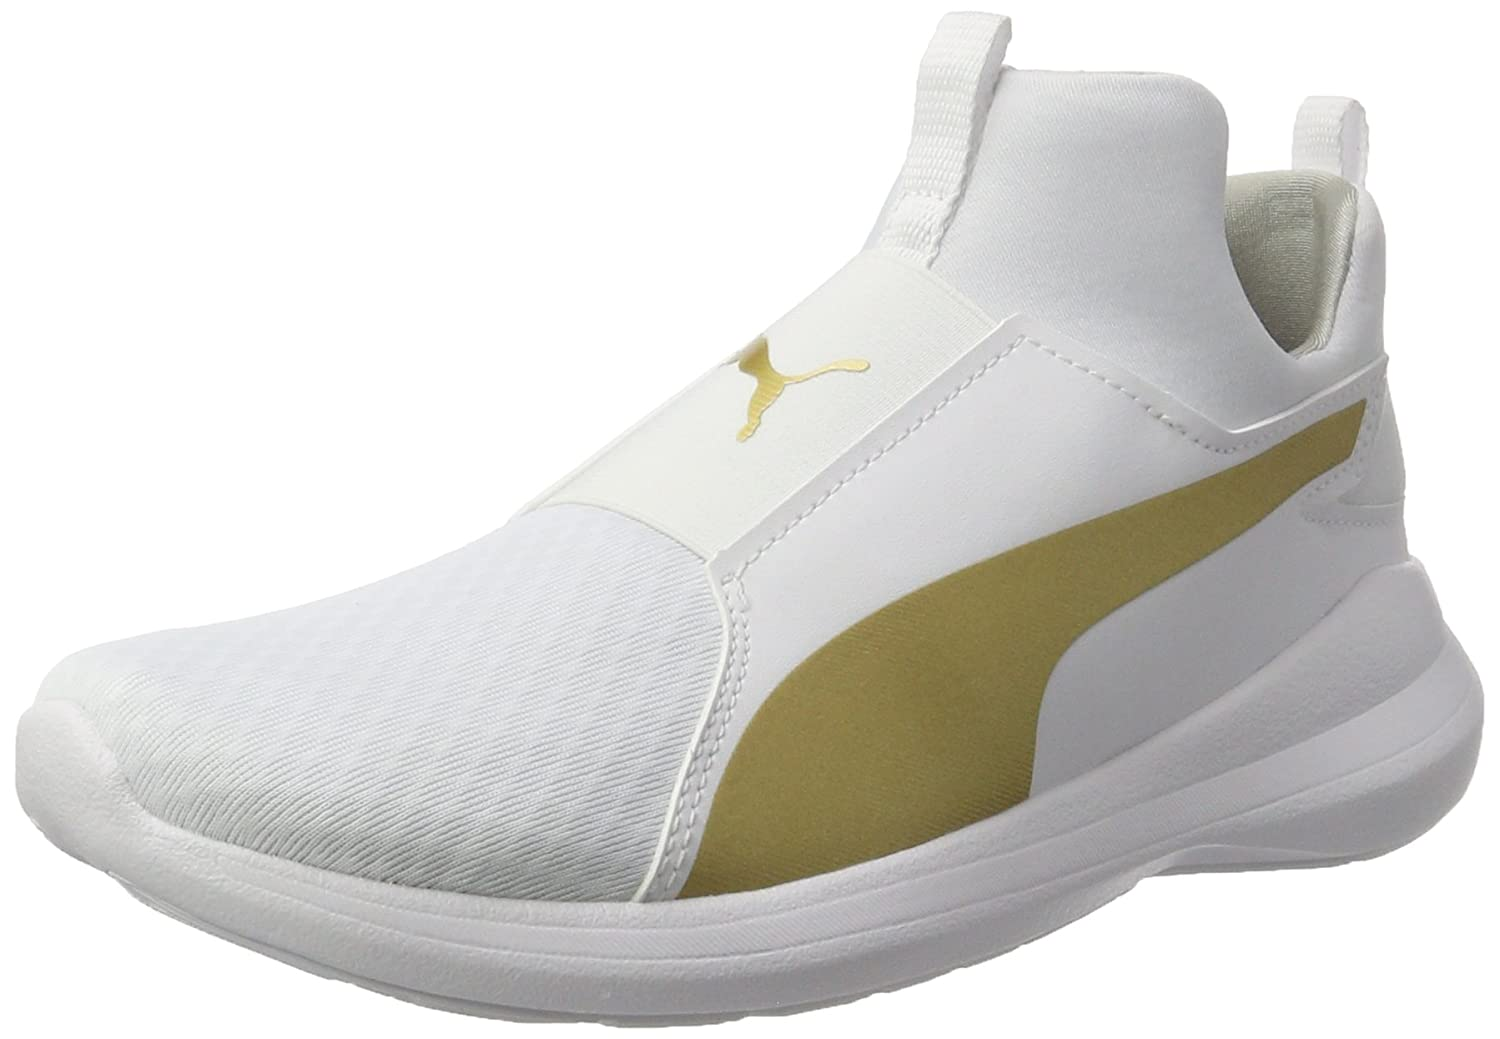 Puma Rebel Mid Wns, Zapatillas para Mujer 36 EU|Blanco (White-team Gold)